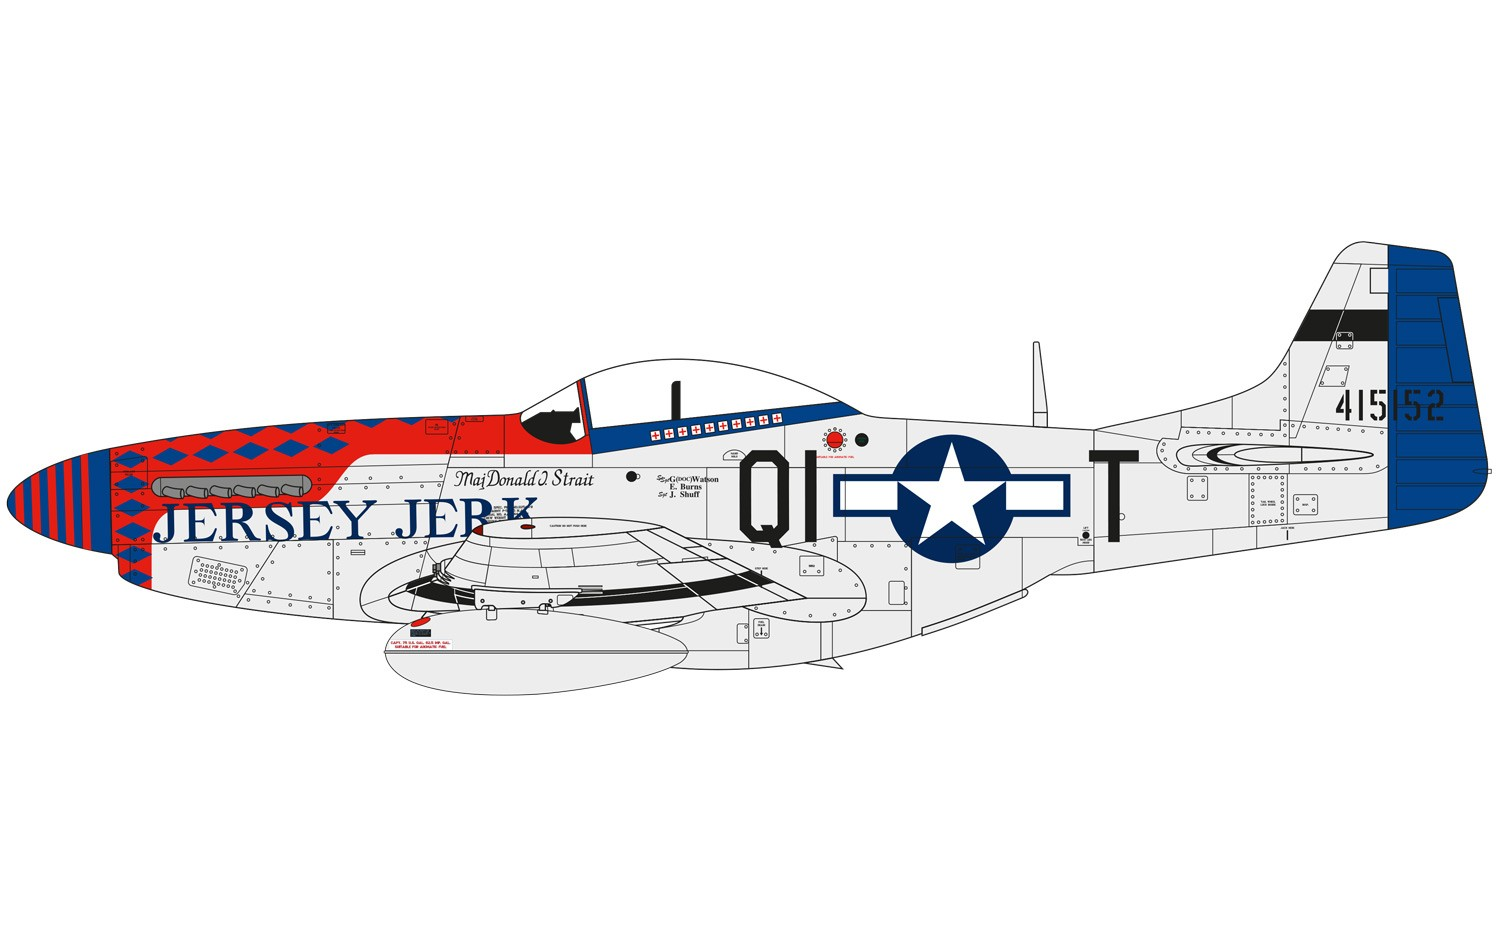 P-51D, 44-15152, 'Jersey Jerk', Captain Donald Strait, 361st Fighter Squadron, 356th Fighter Group, United States Army Air Force, RAF Martlesham Heath, Suffolk, England, 1945